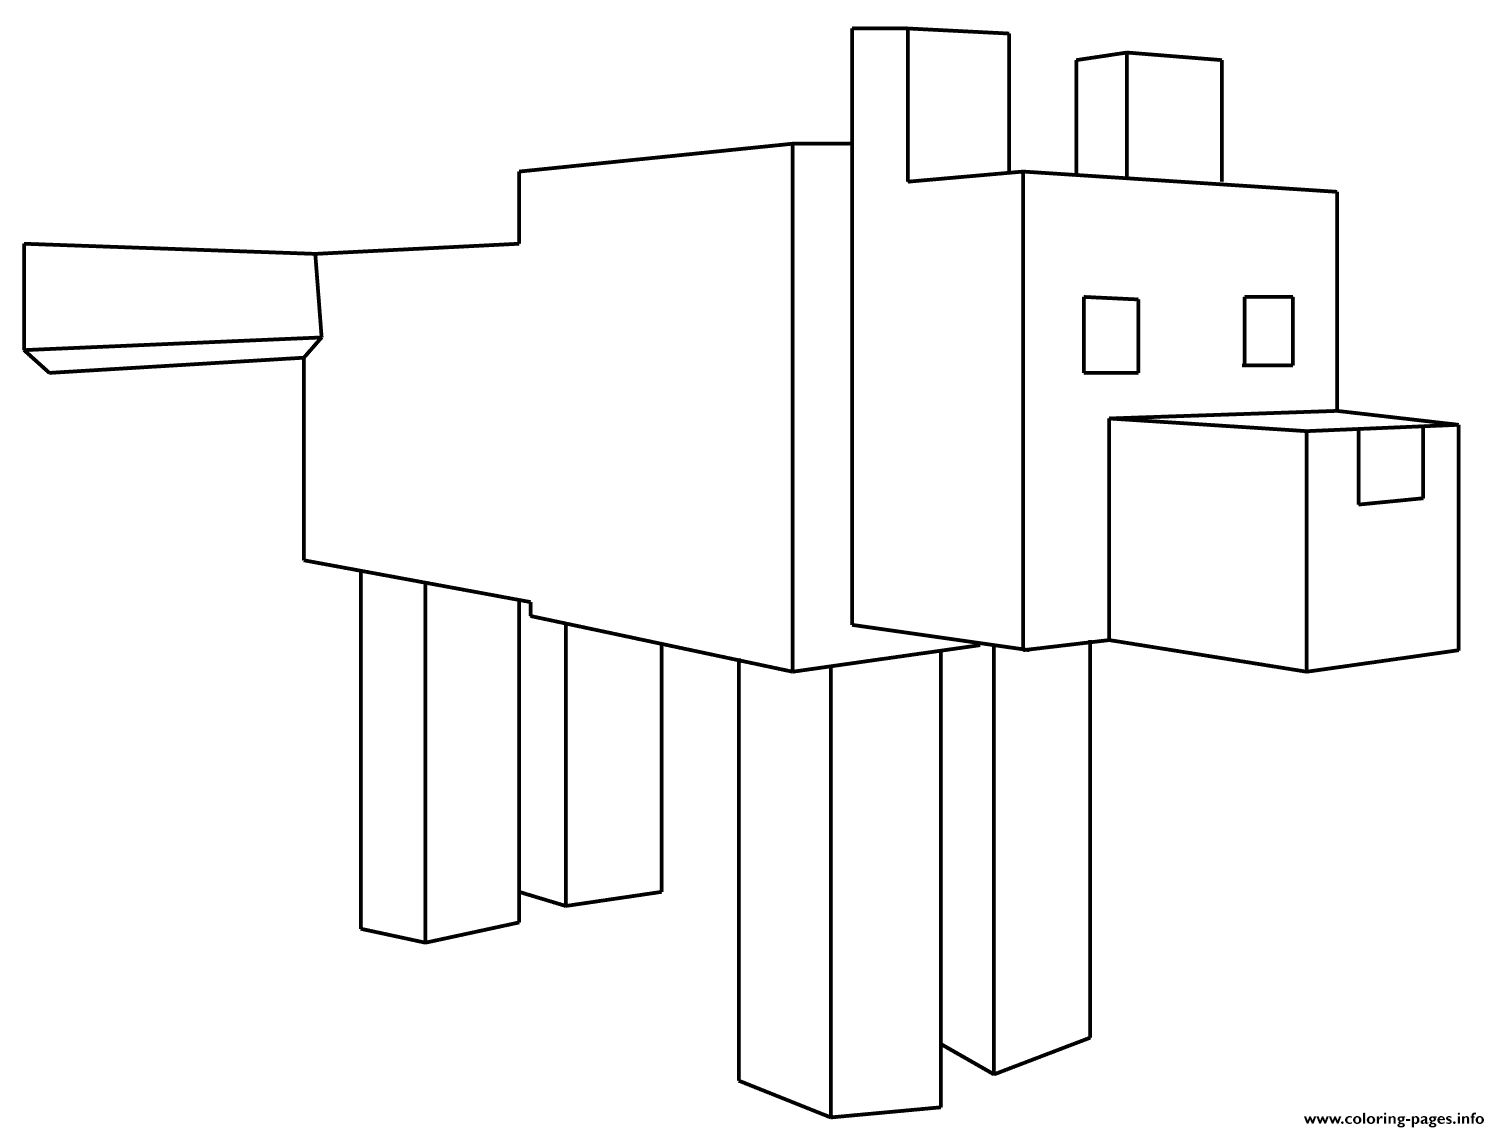 Print Minecraft Wolf Coloring Pages Minecraft Coloring Pages Coloring Pages Minecraft Wolf [ 1132 x 1500 Pixel ]